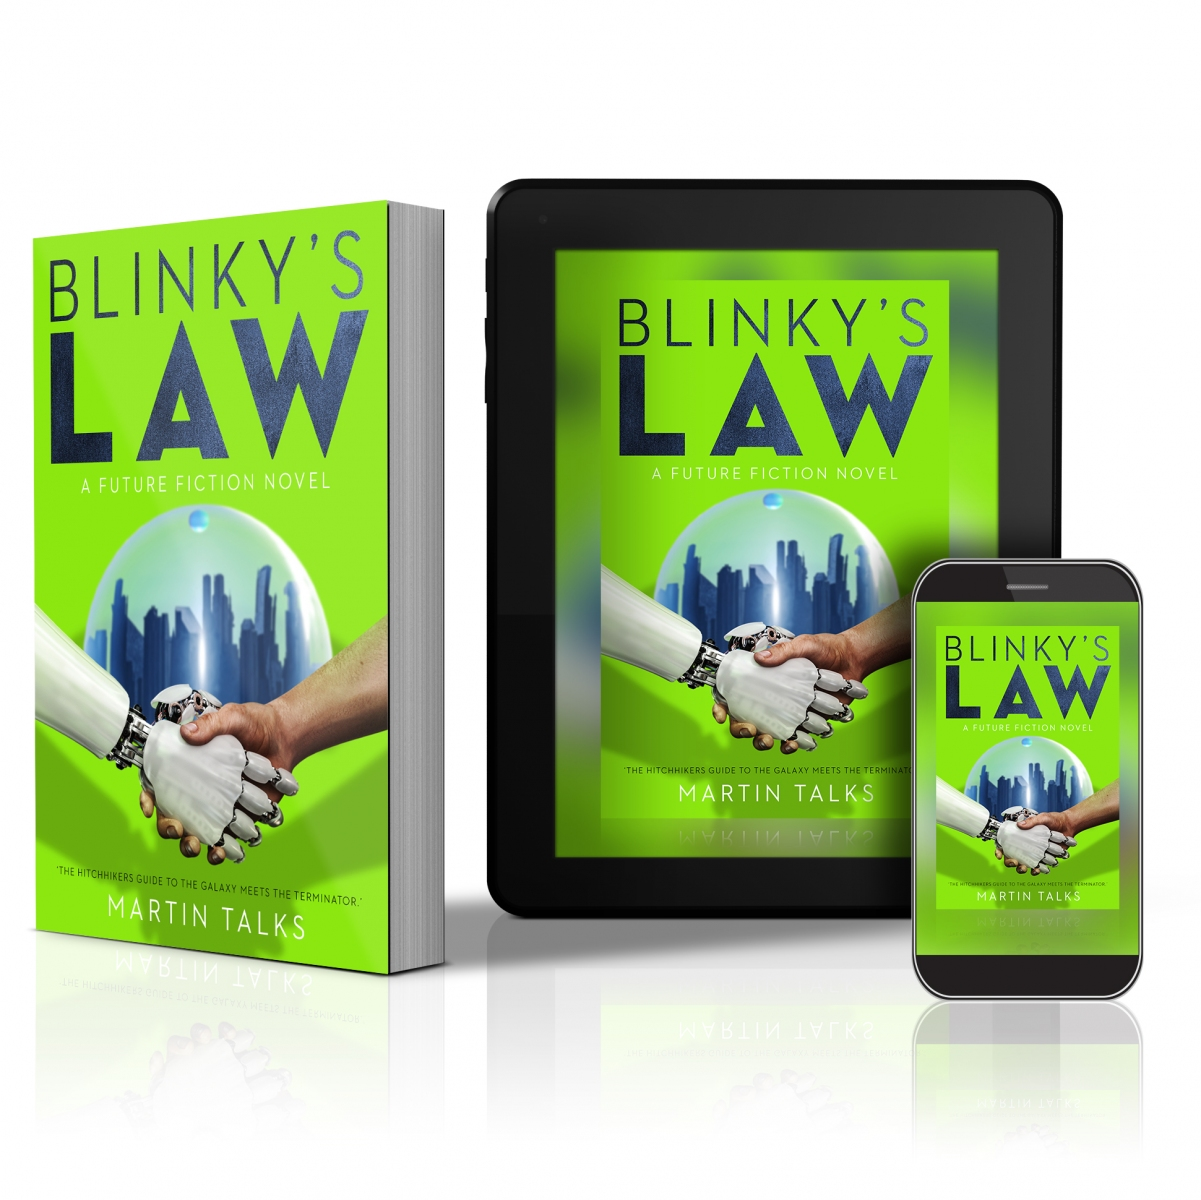 Blinkys-Law-3d-book-wht